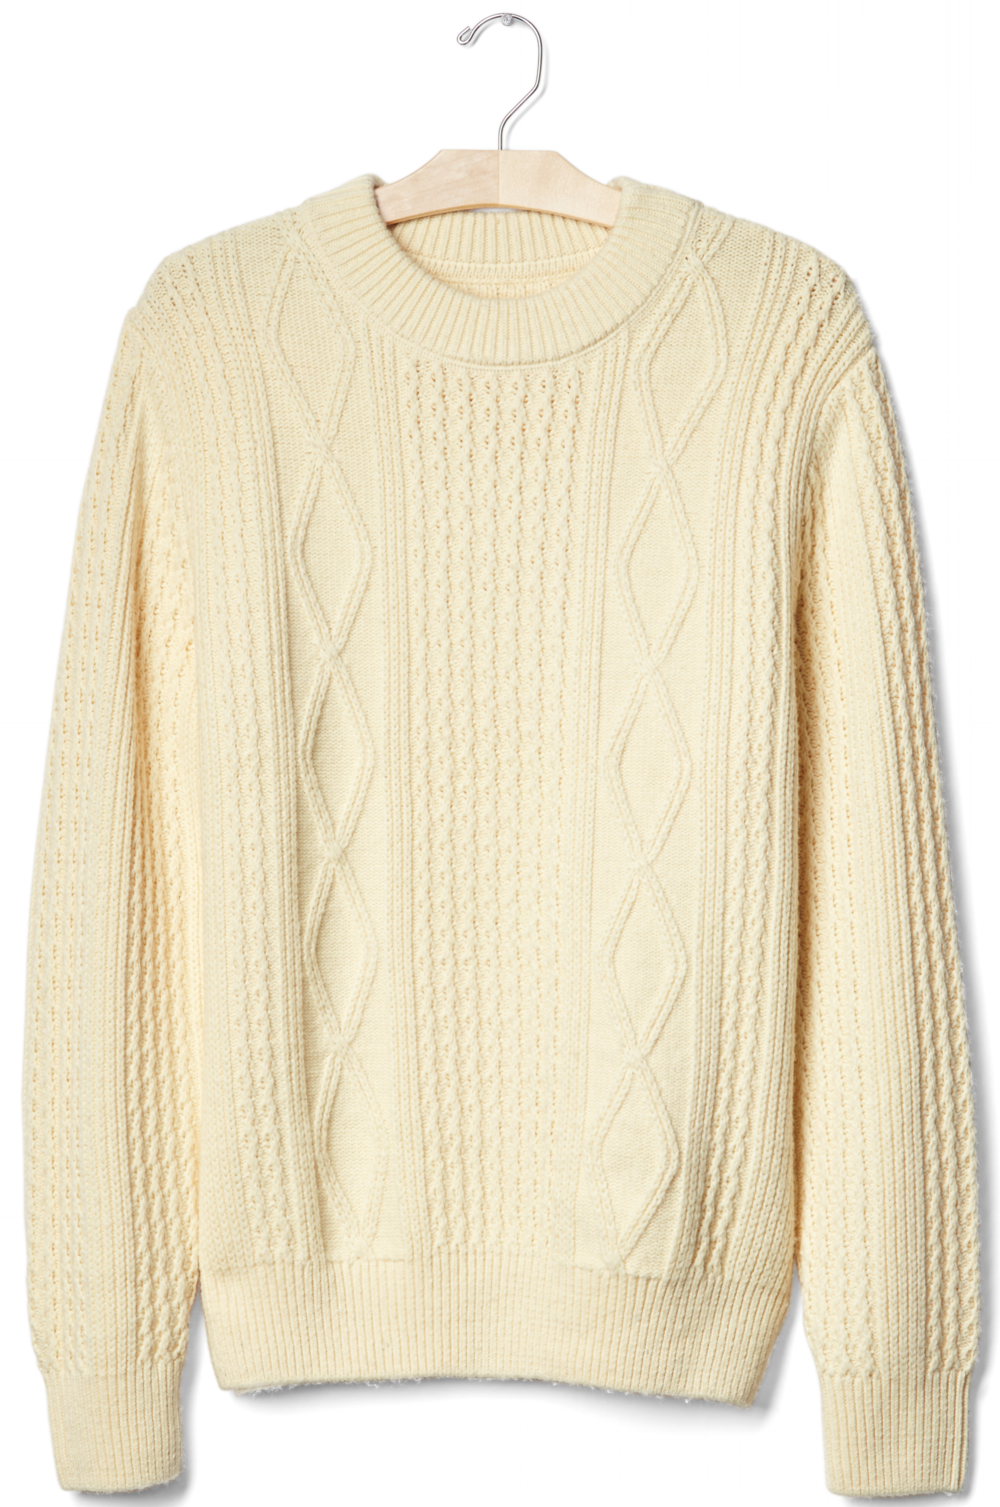 Gap Cable Knit Crew Sweater, $55.96